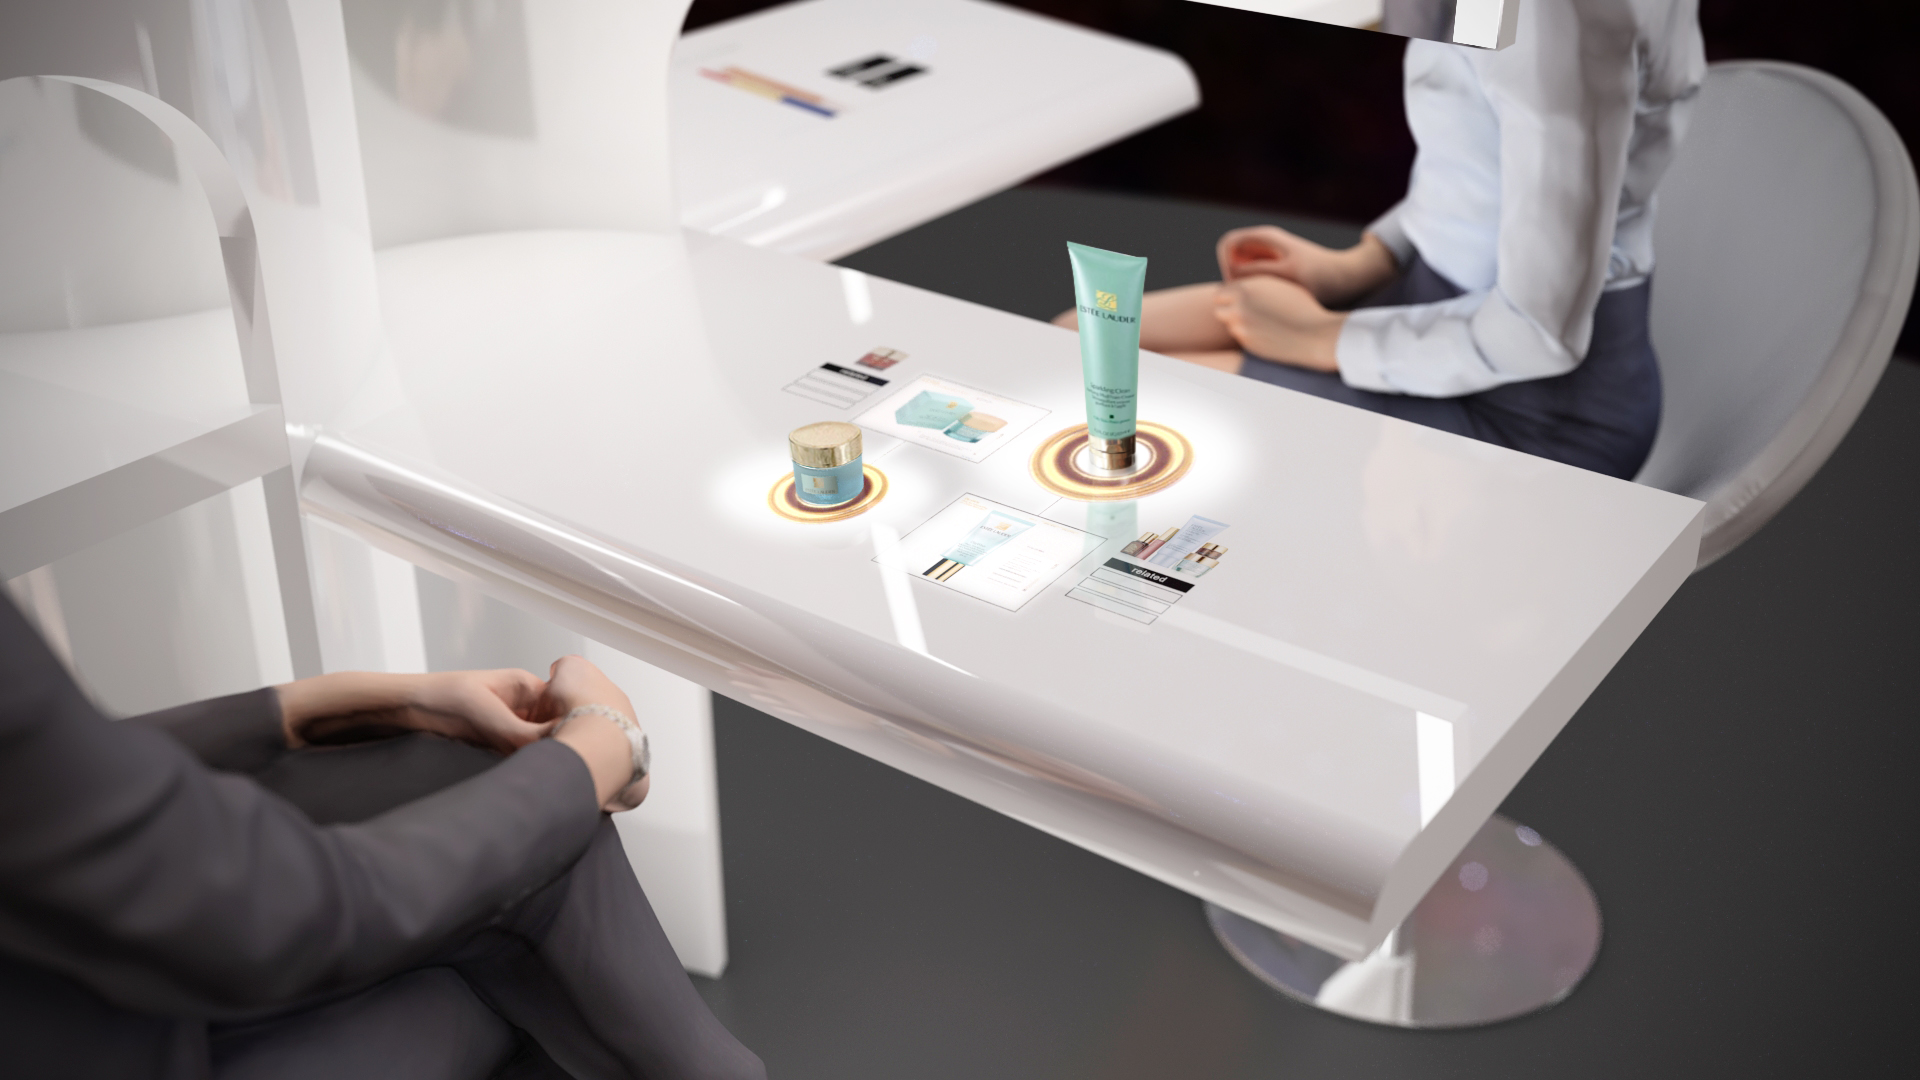 Estee Lauder interactive table